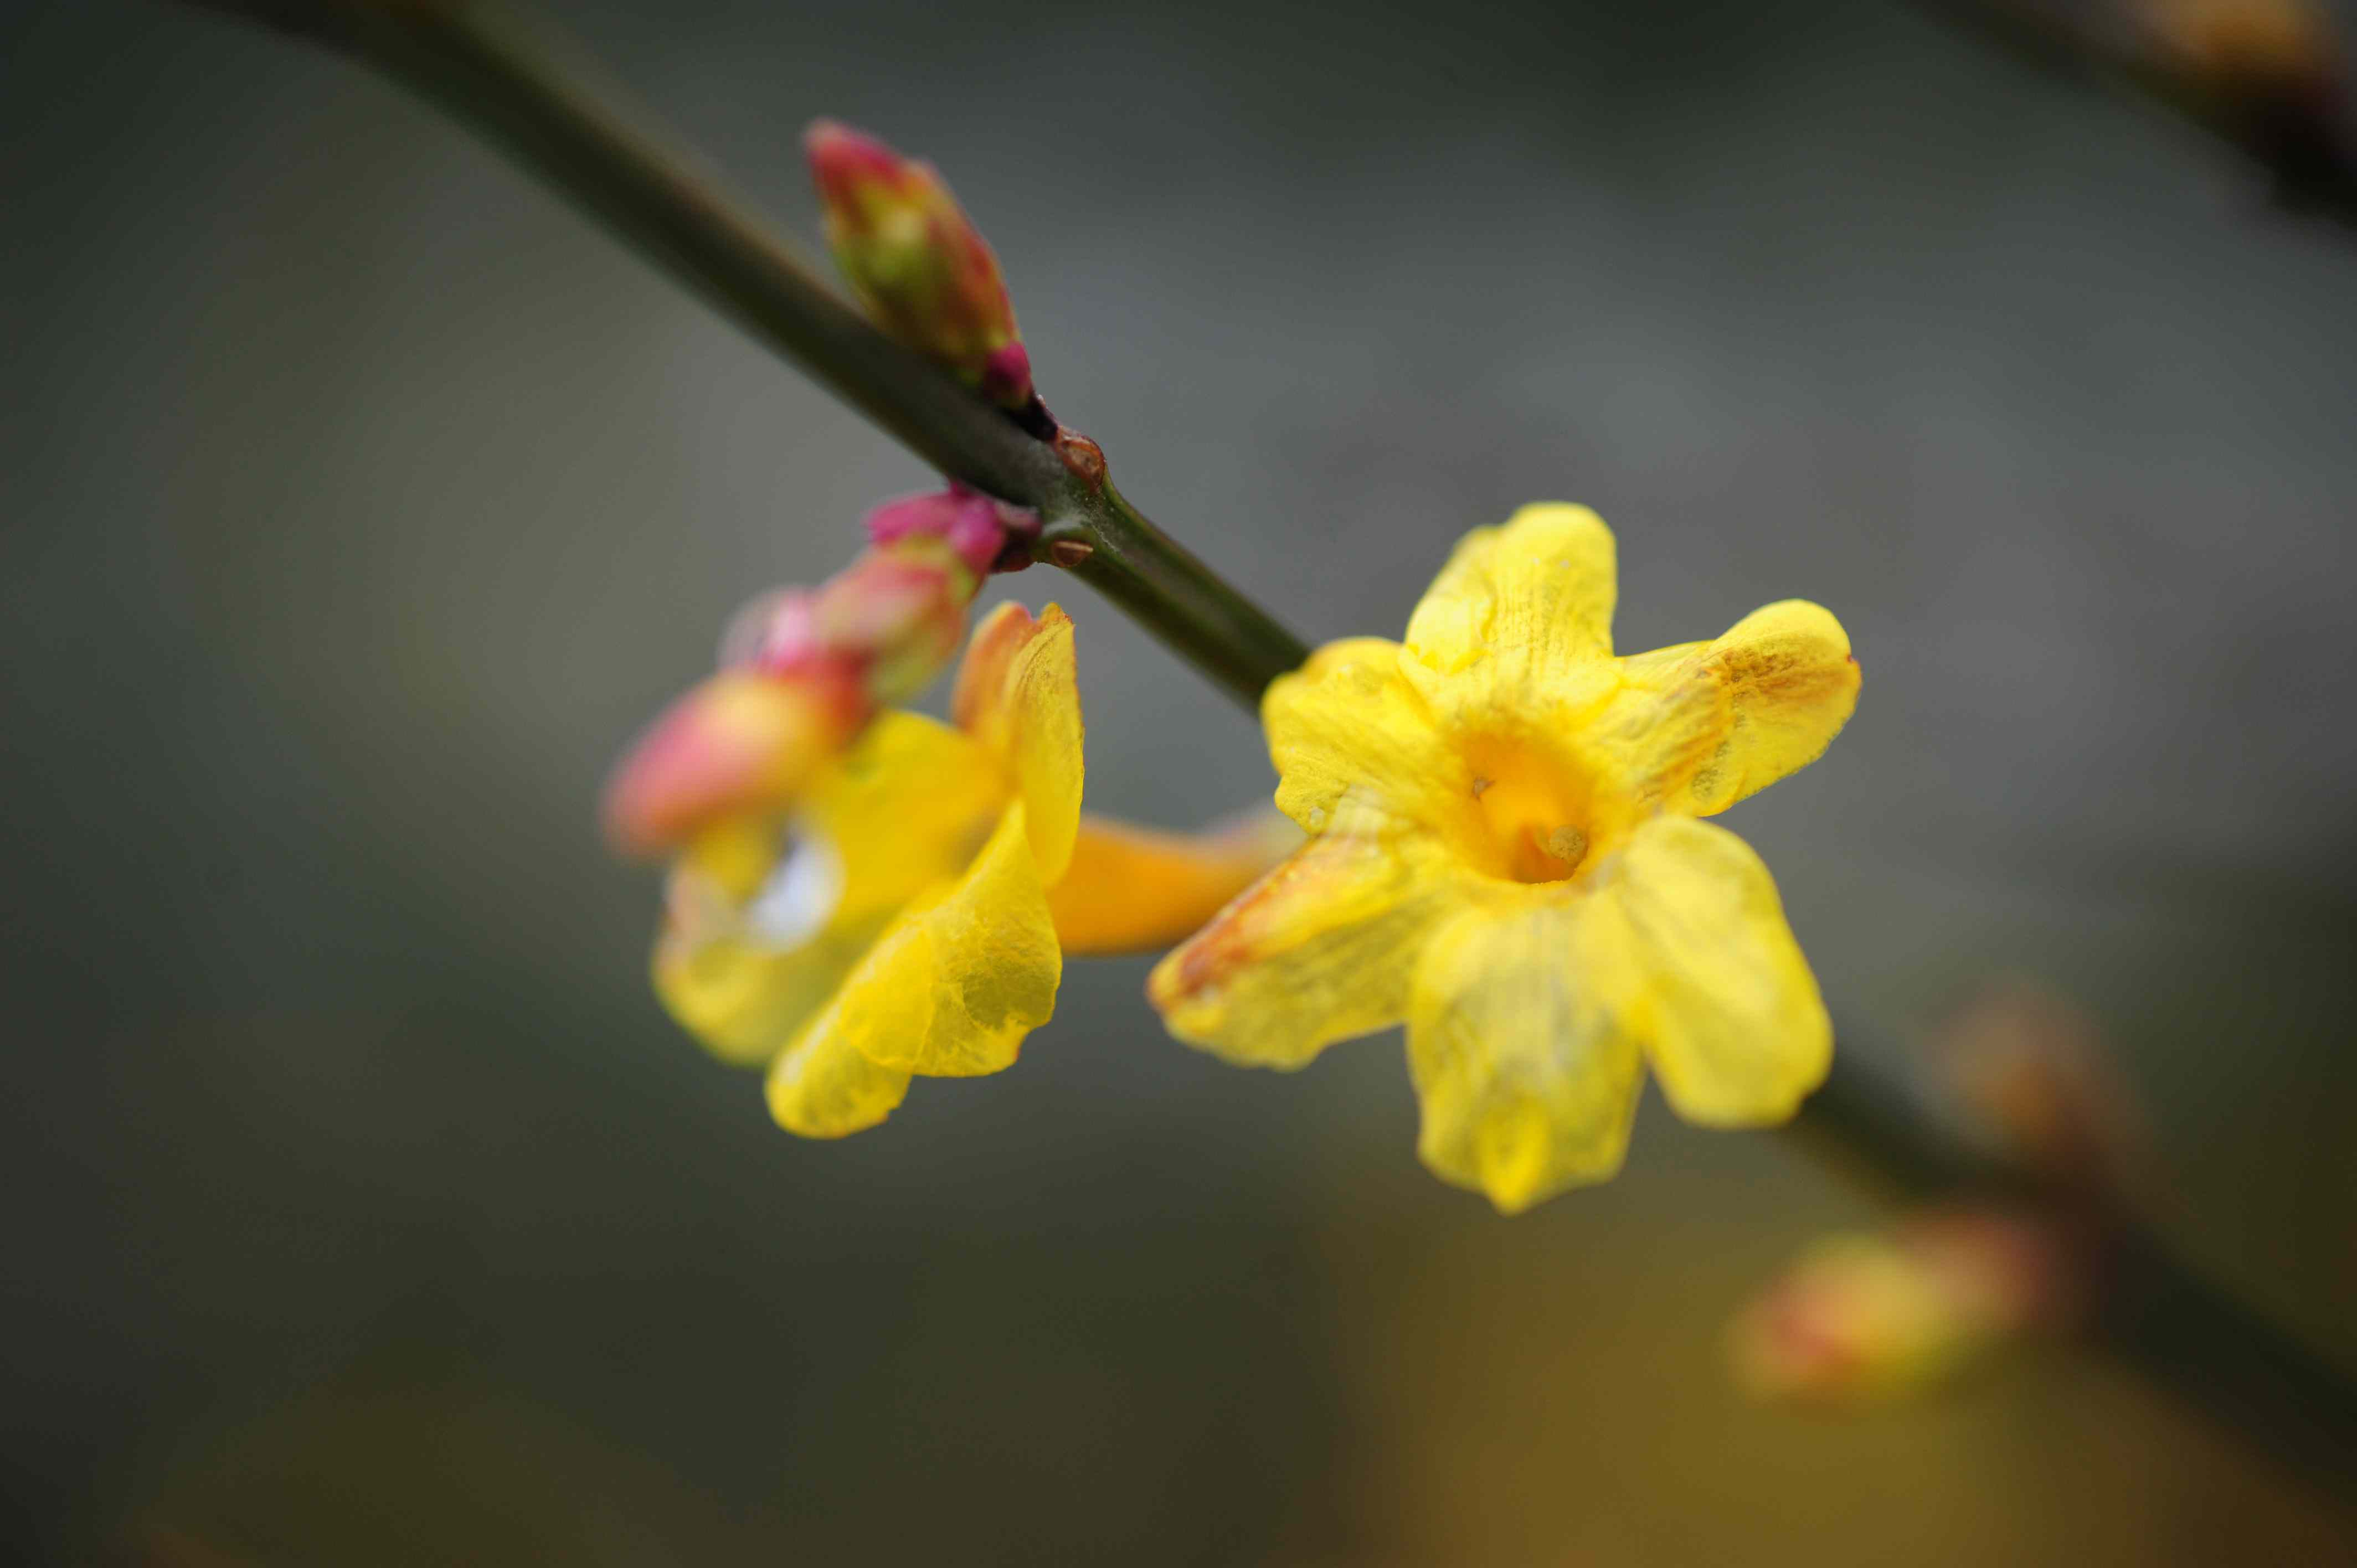 Winter jasmine with yellow flowers and buds on vine